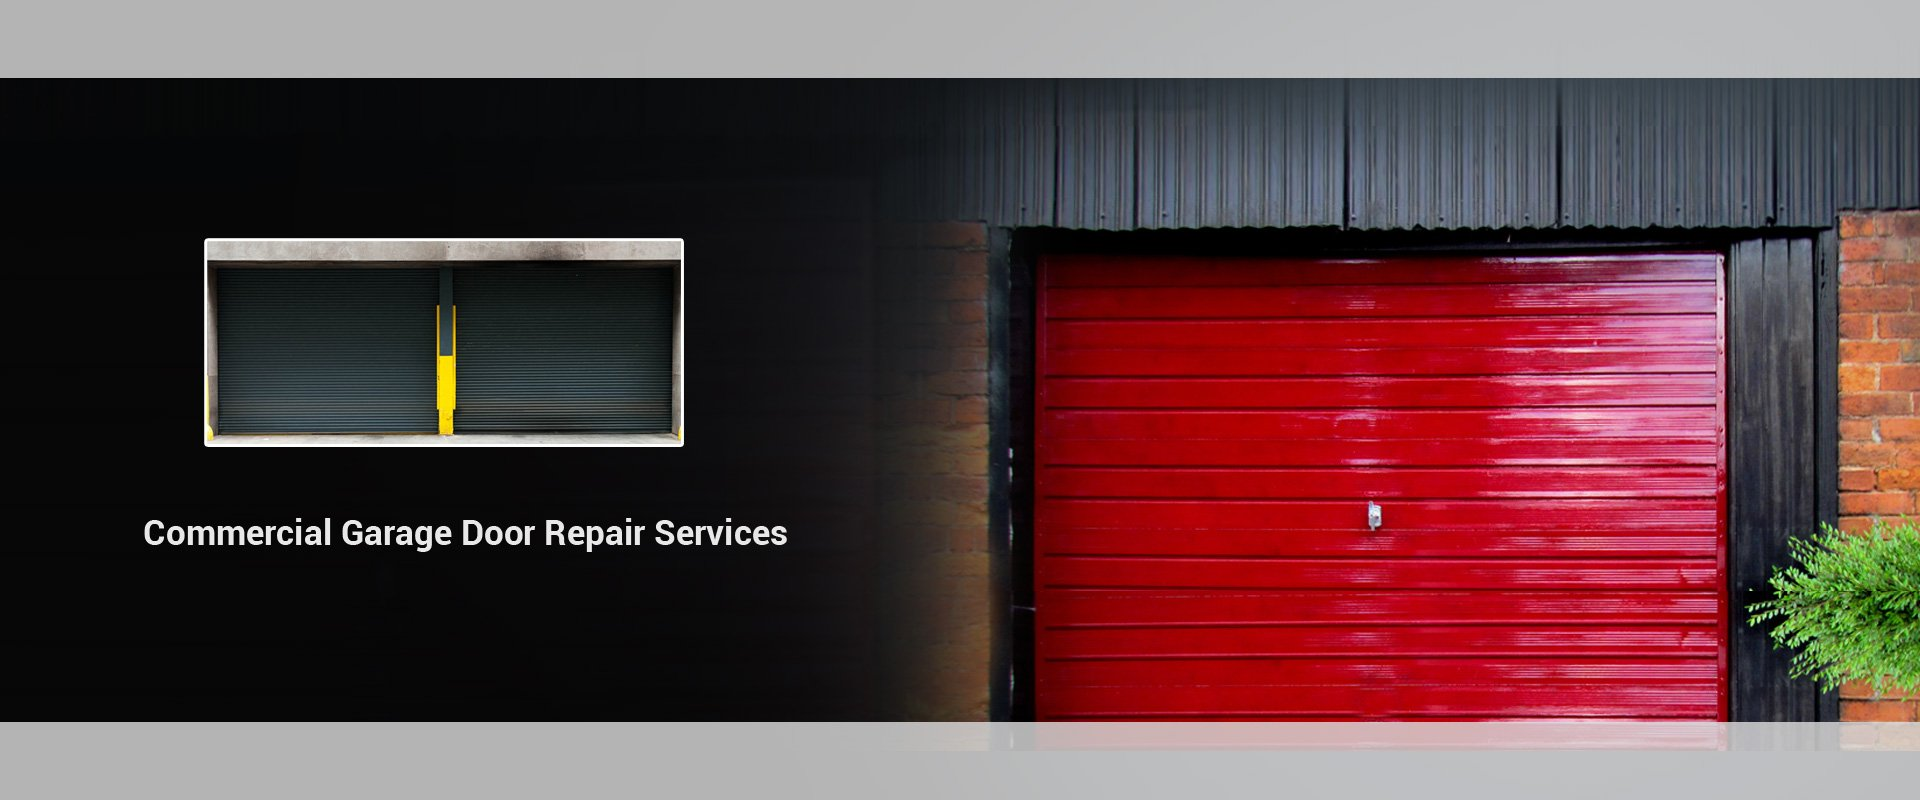 Commercial Garage Door Repair Camarillo CA